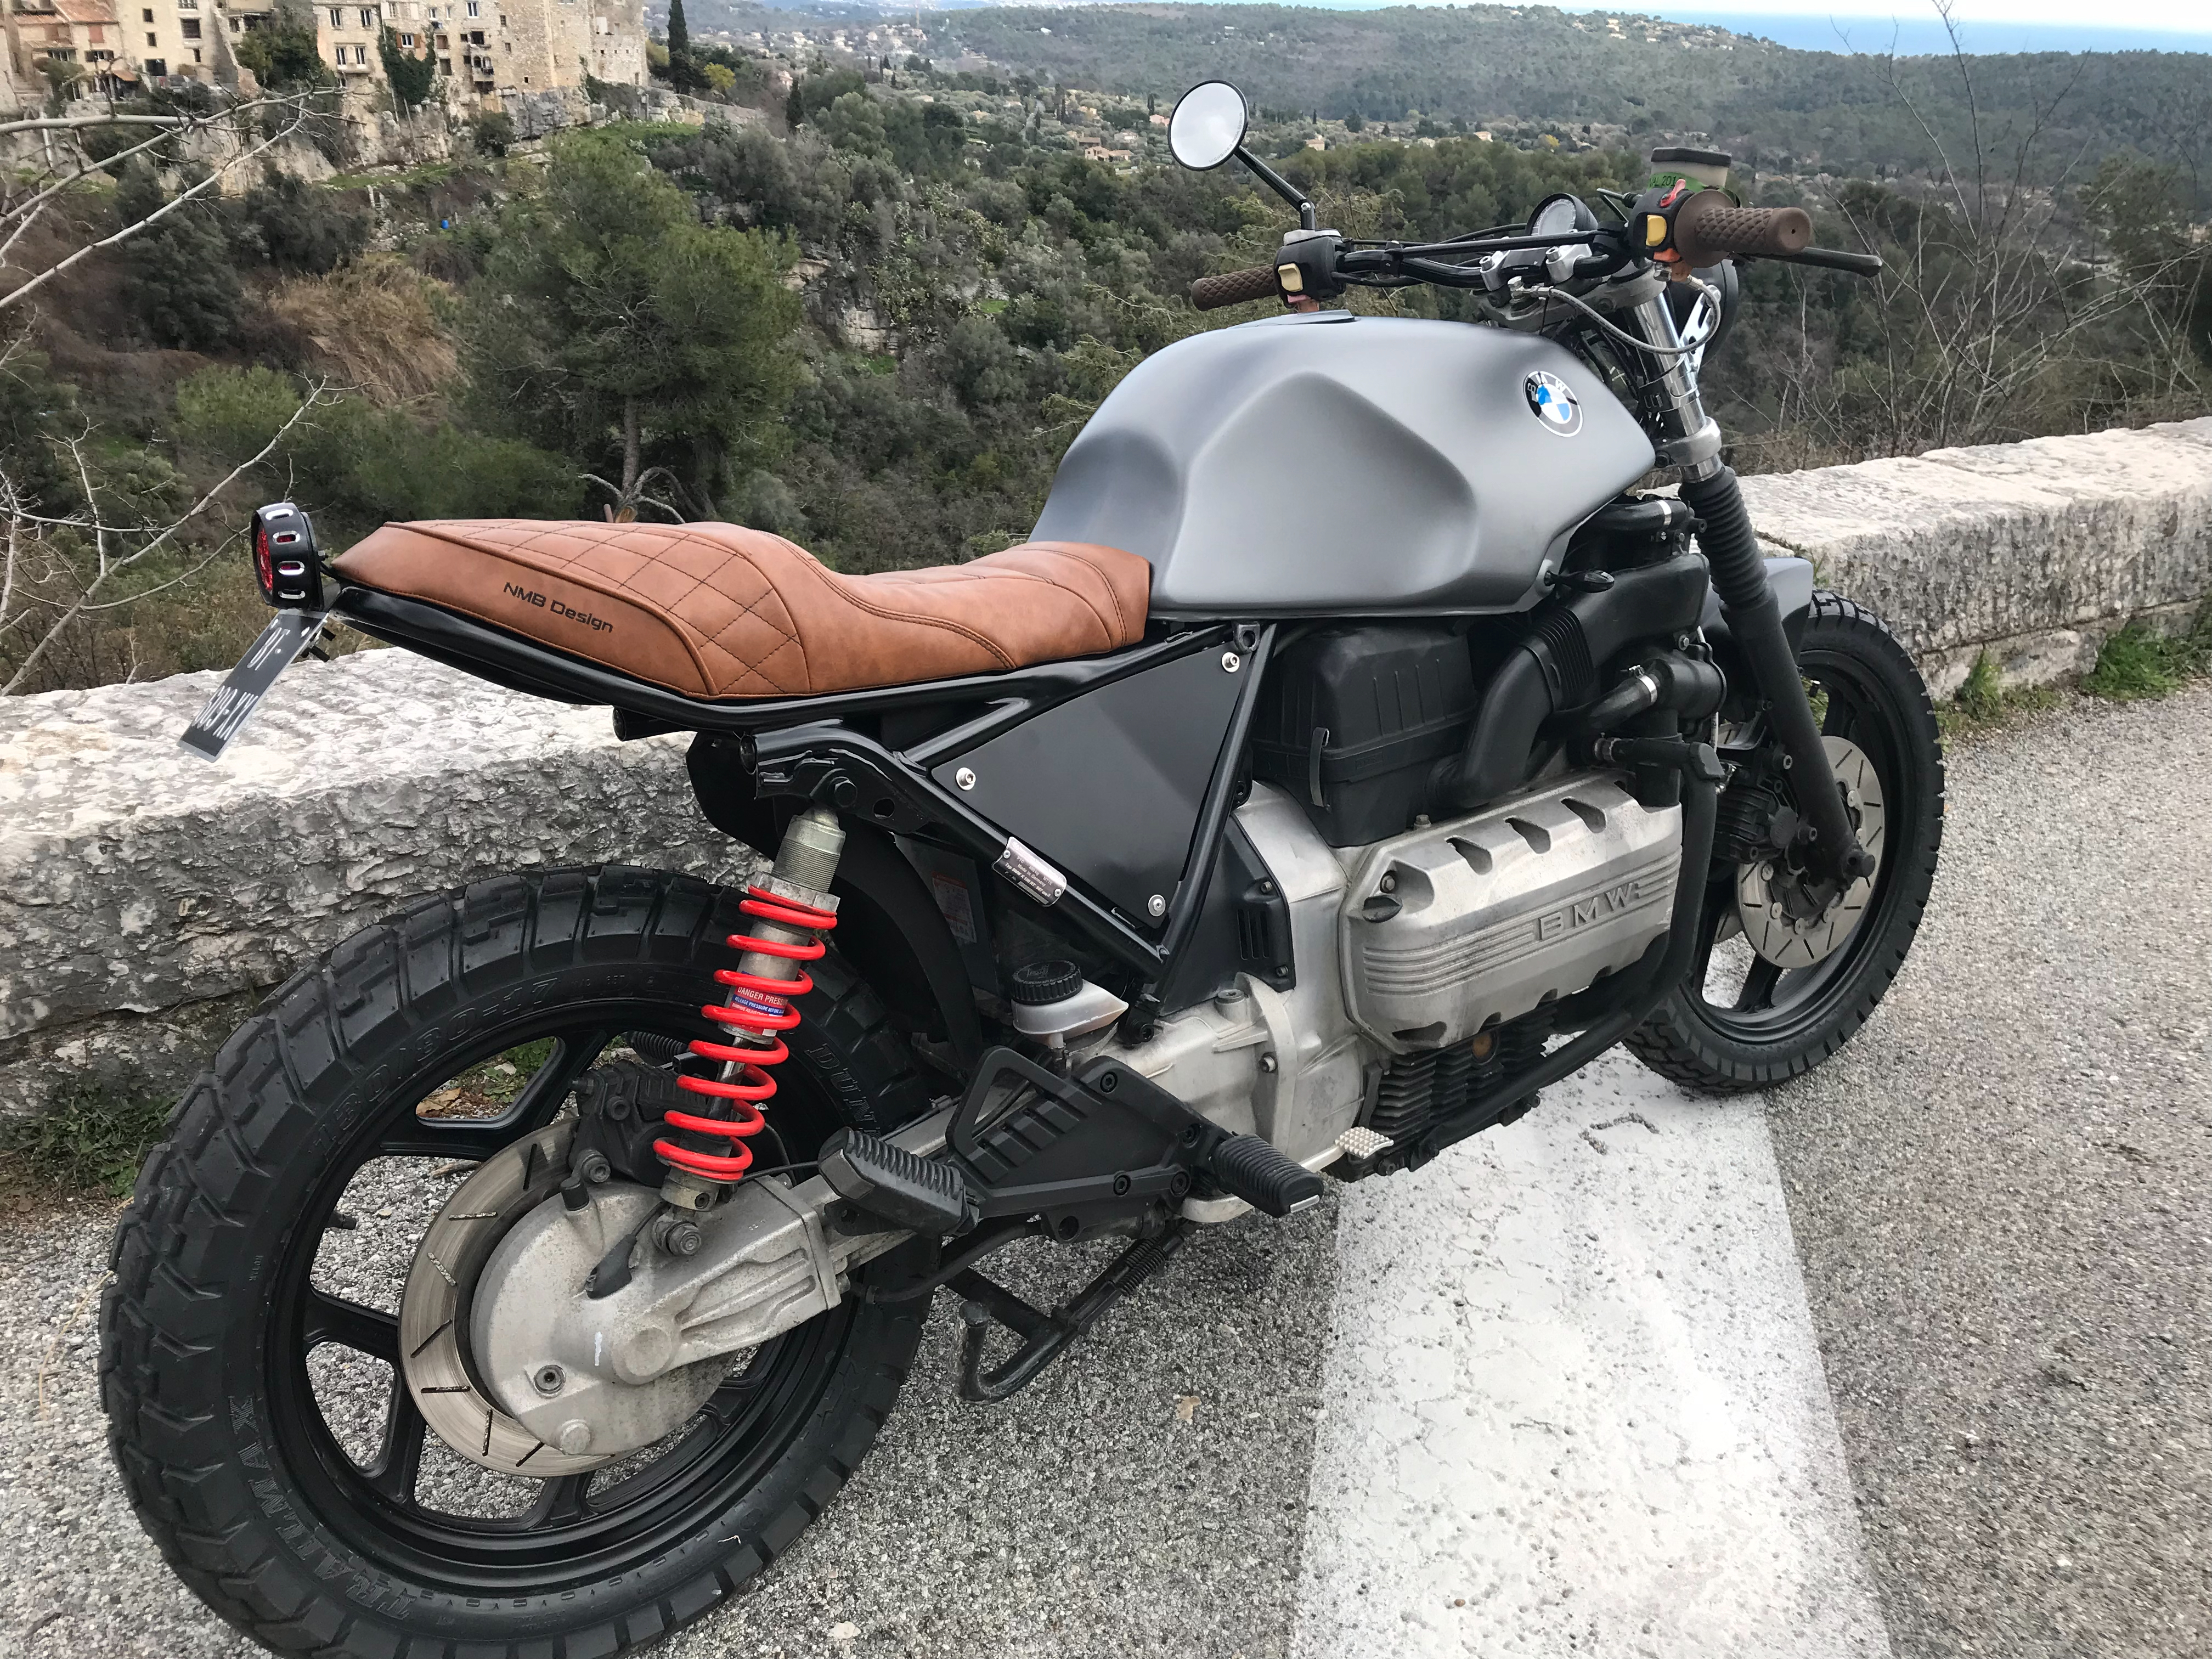 bmw K100 scrambler duke motorcycles